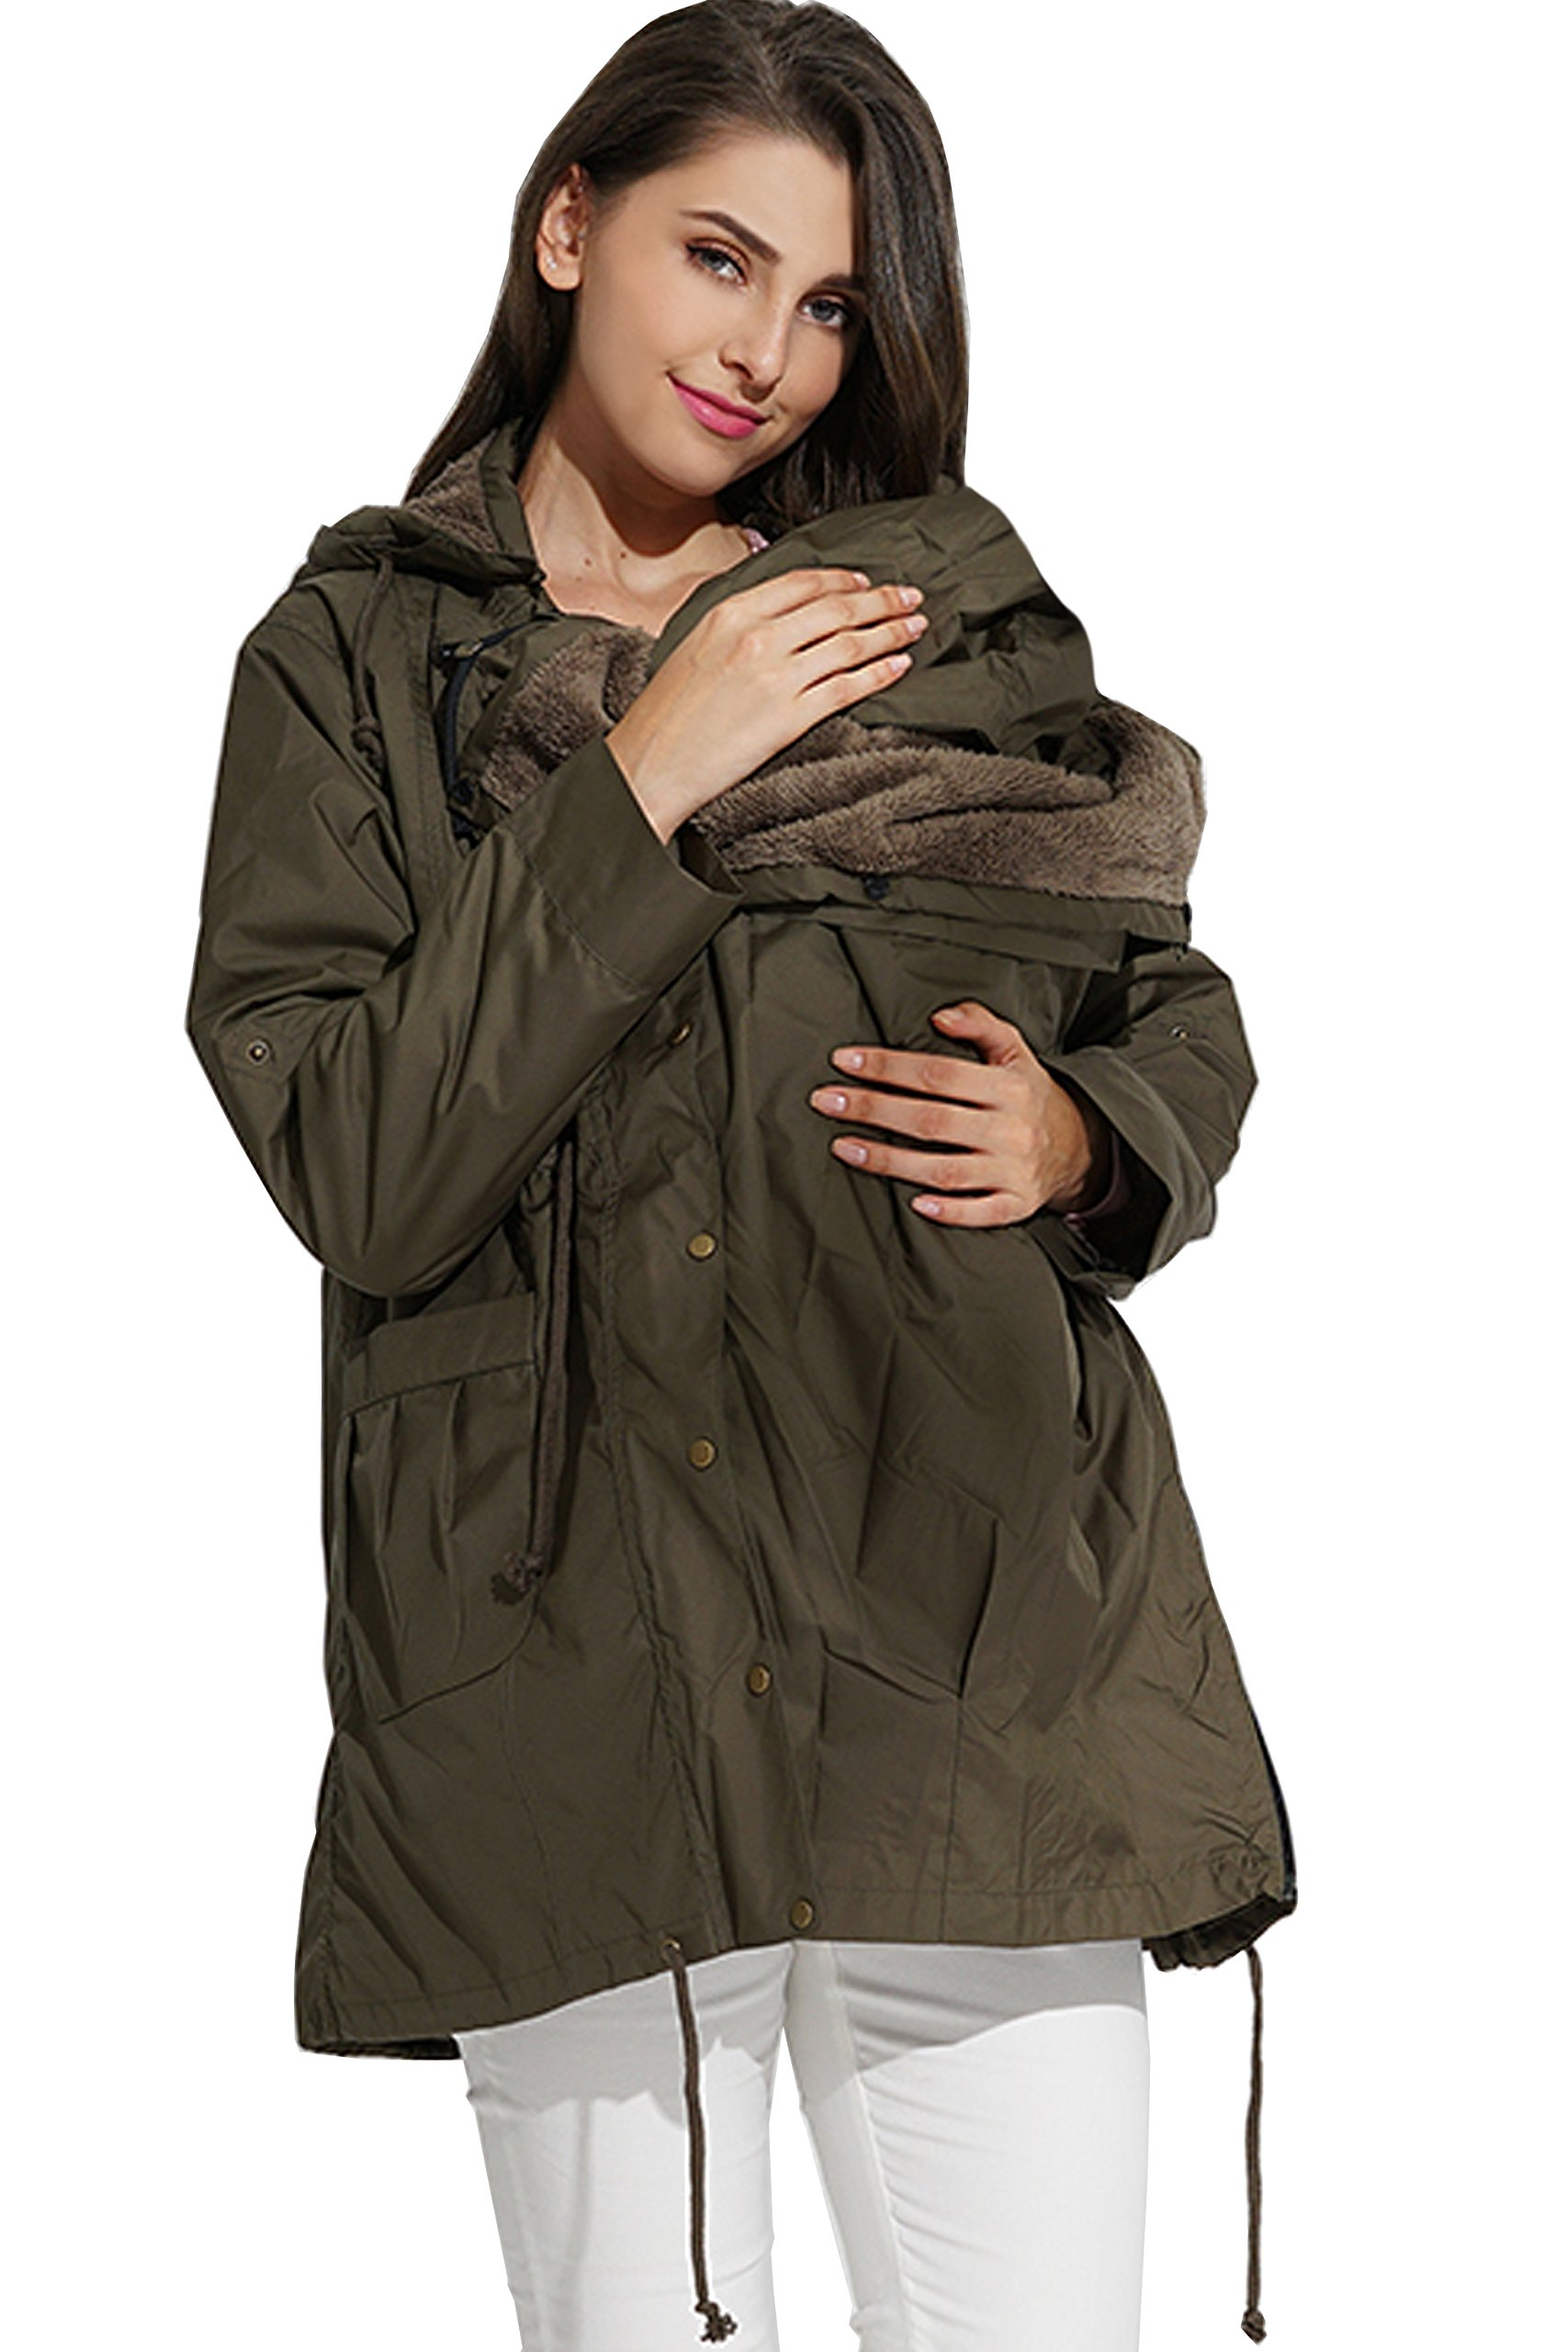 Sweet Mommy Multifunctional Mod's Style Mama Coat with a Baby Pouch Khaki, M by Sweet Mommy